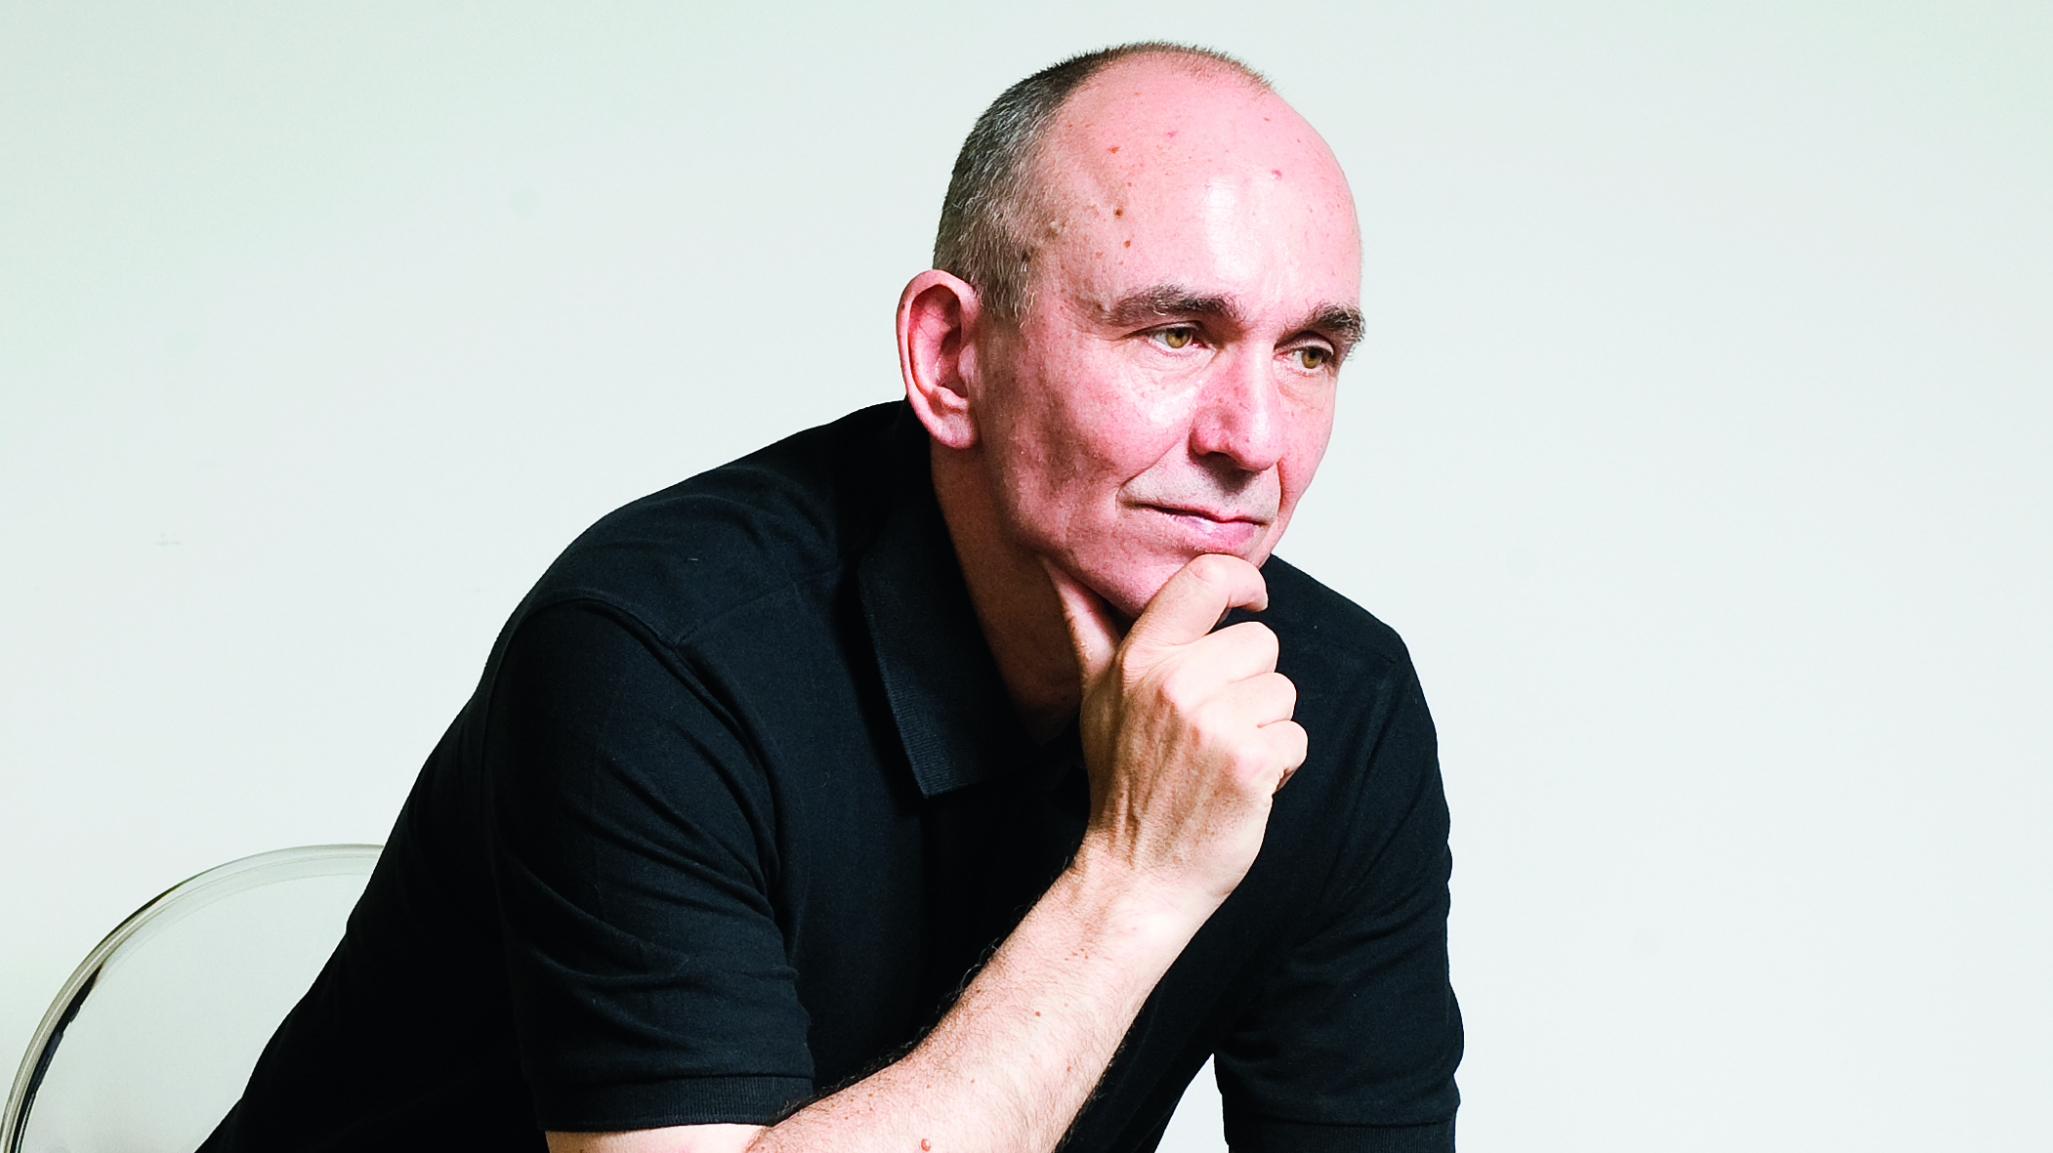 Peter Molyneux thinks deeply